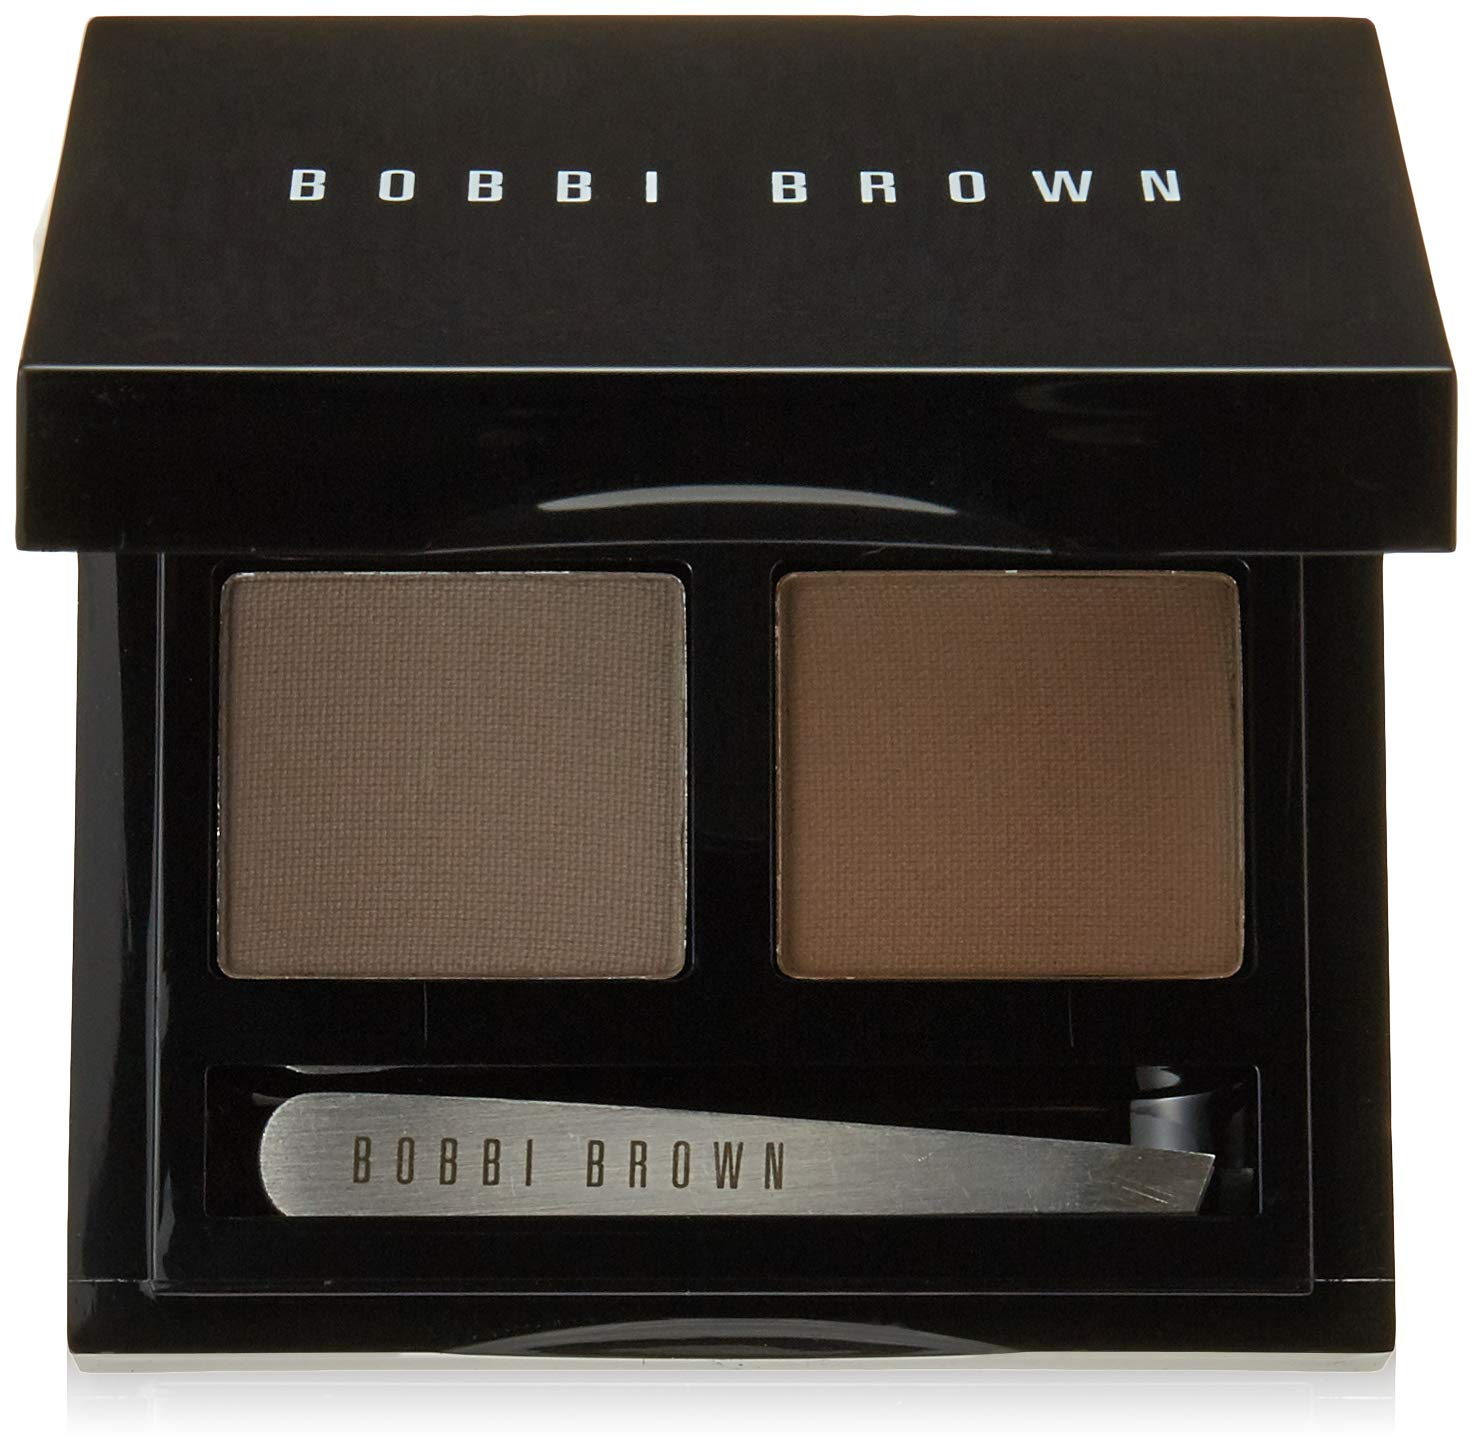 Bobbi Brown Brow Kit, No. 02 Saddle and Mahogany, 0.1 Ounce by Bobbi Brown